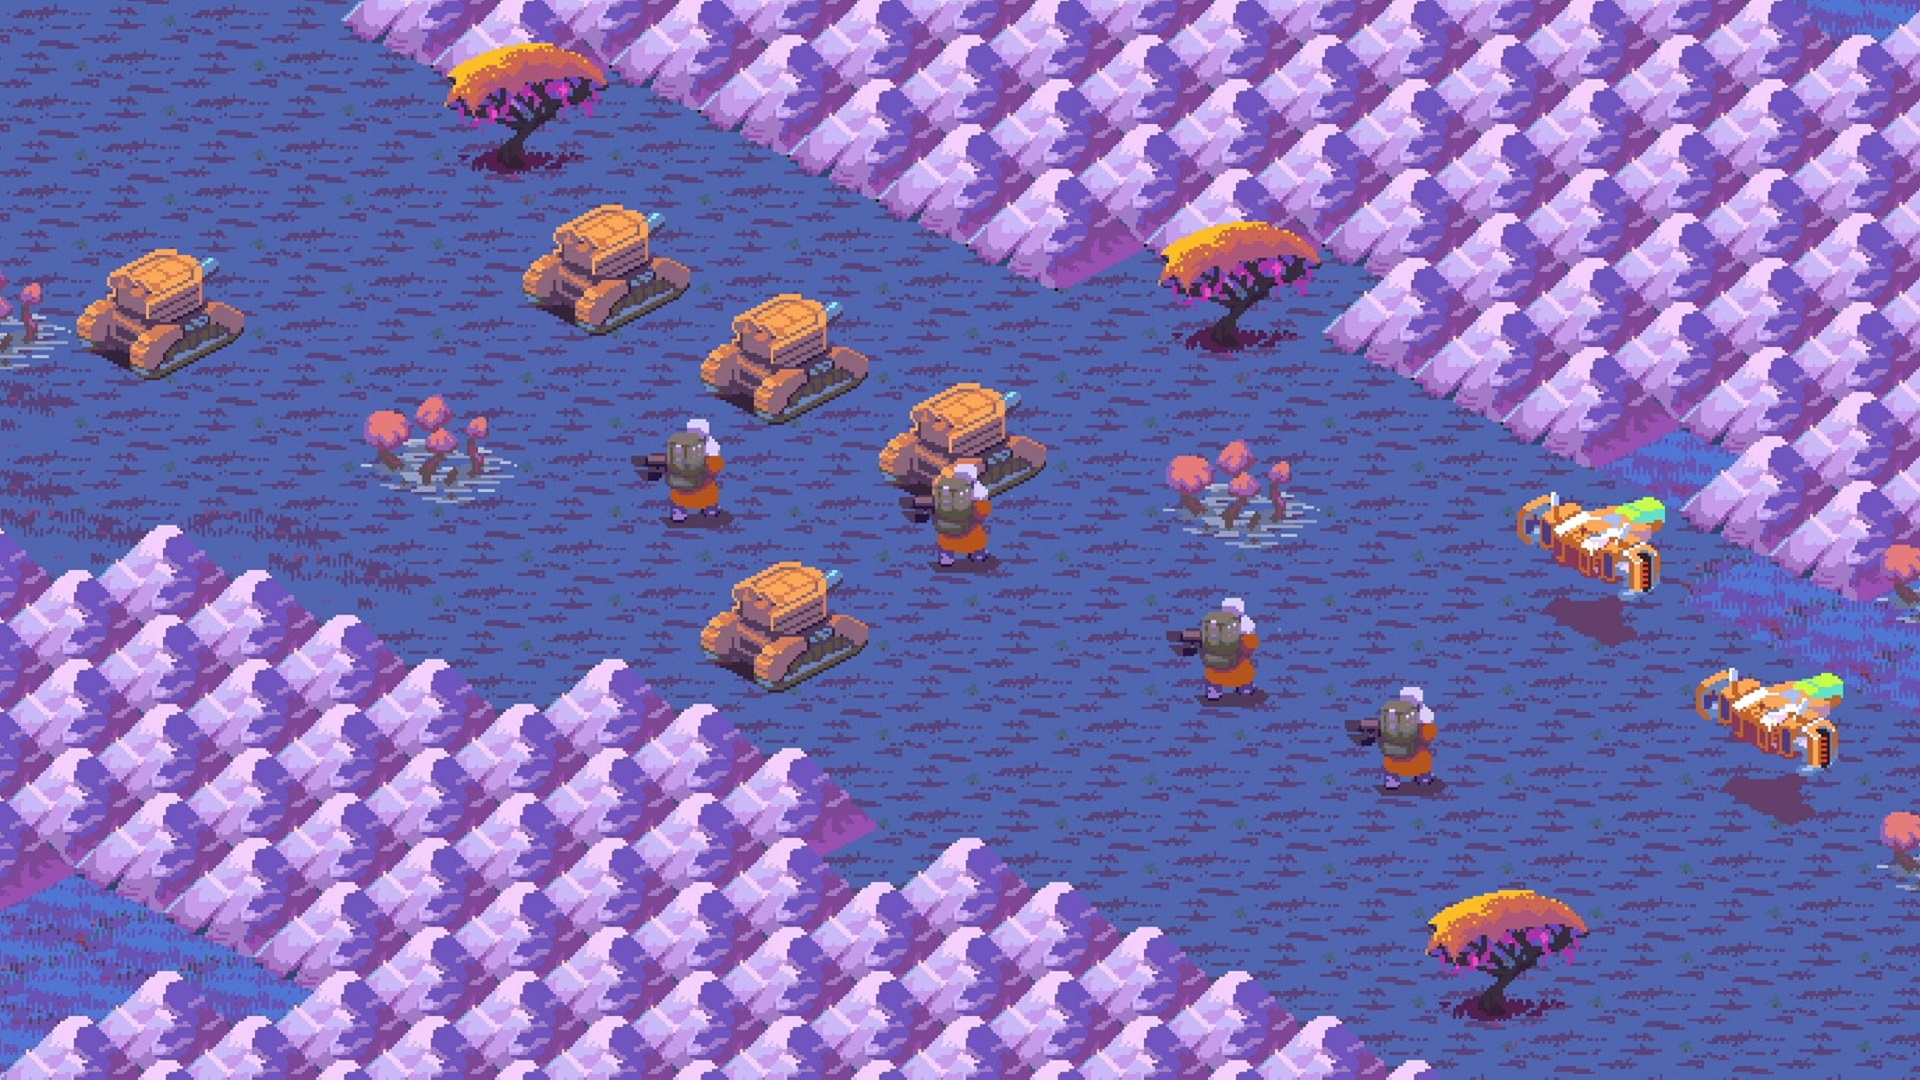 Cantata is a stylish pixel-art strategy game that blends Advance Wars and Factorio